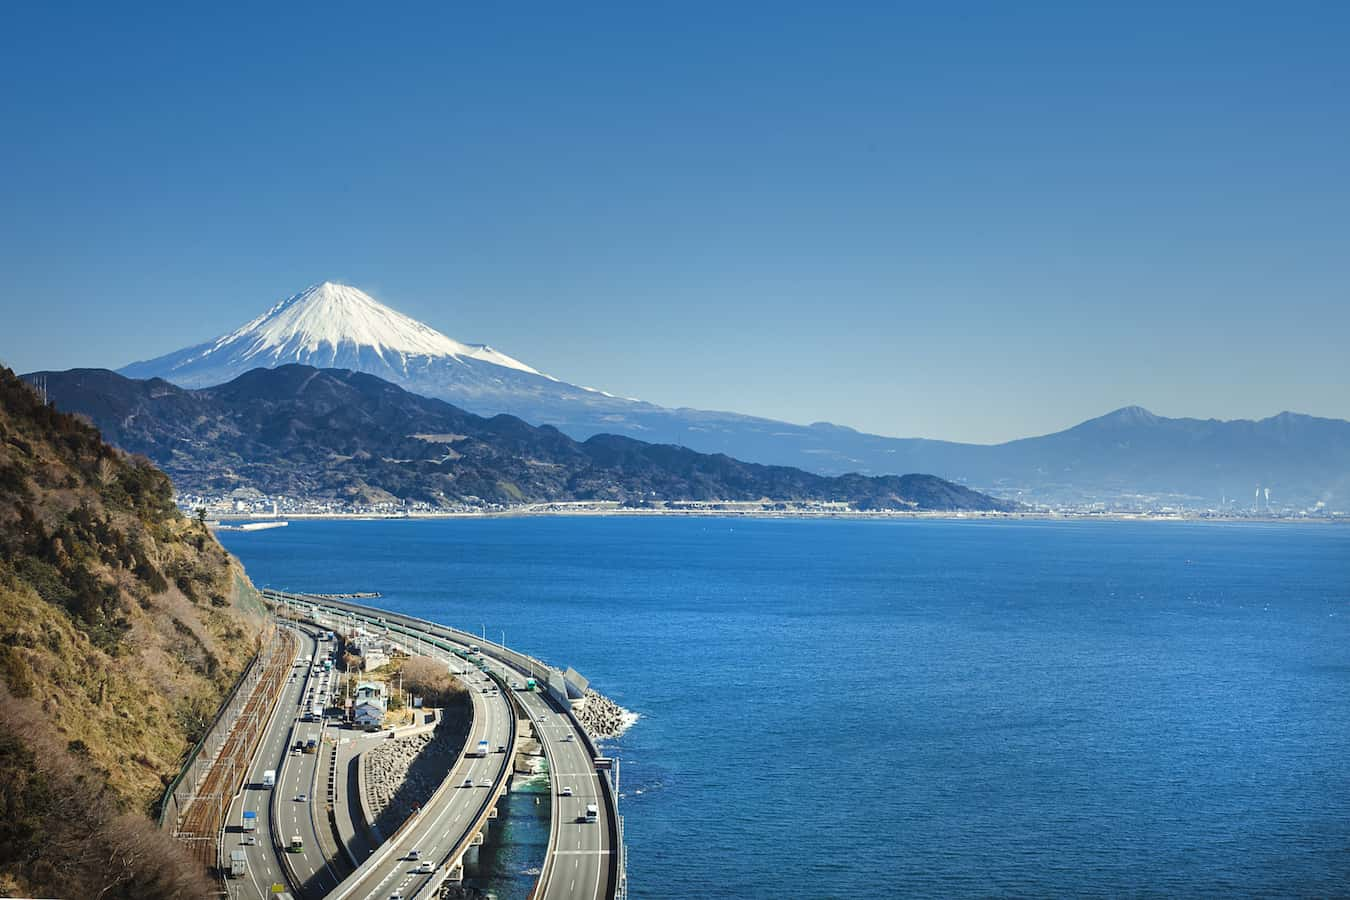 Image of * 埵 mountain pass